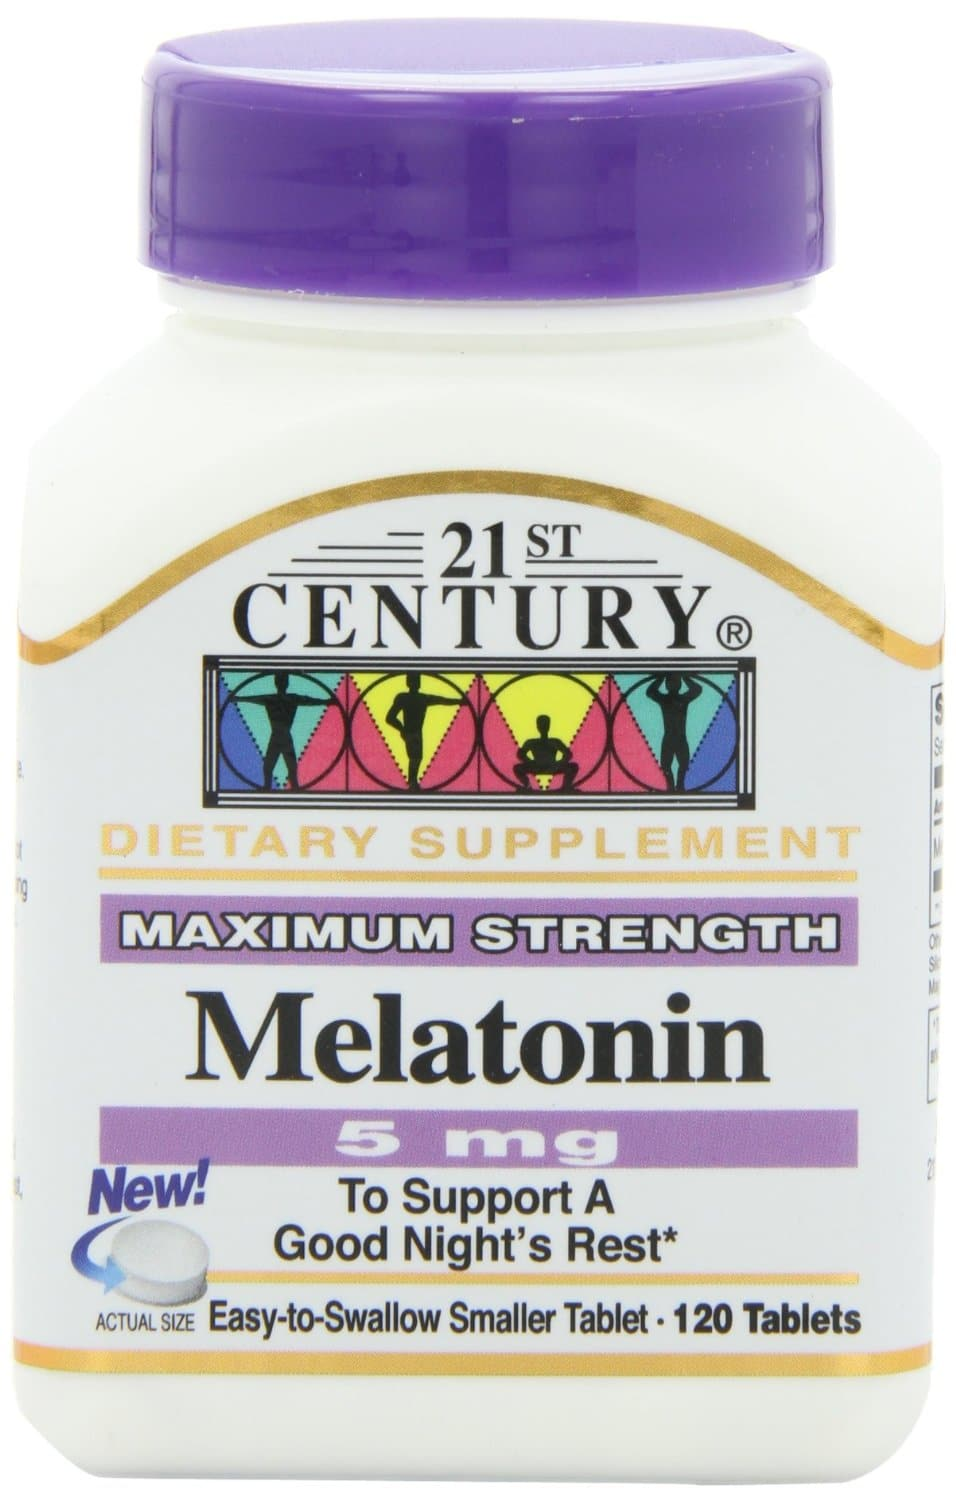 21st Century Melatonin Tablets: 120-Ct 10mg $4.65 or 5mg  $3.30 + Free S/H